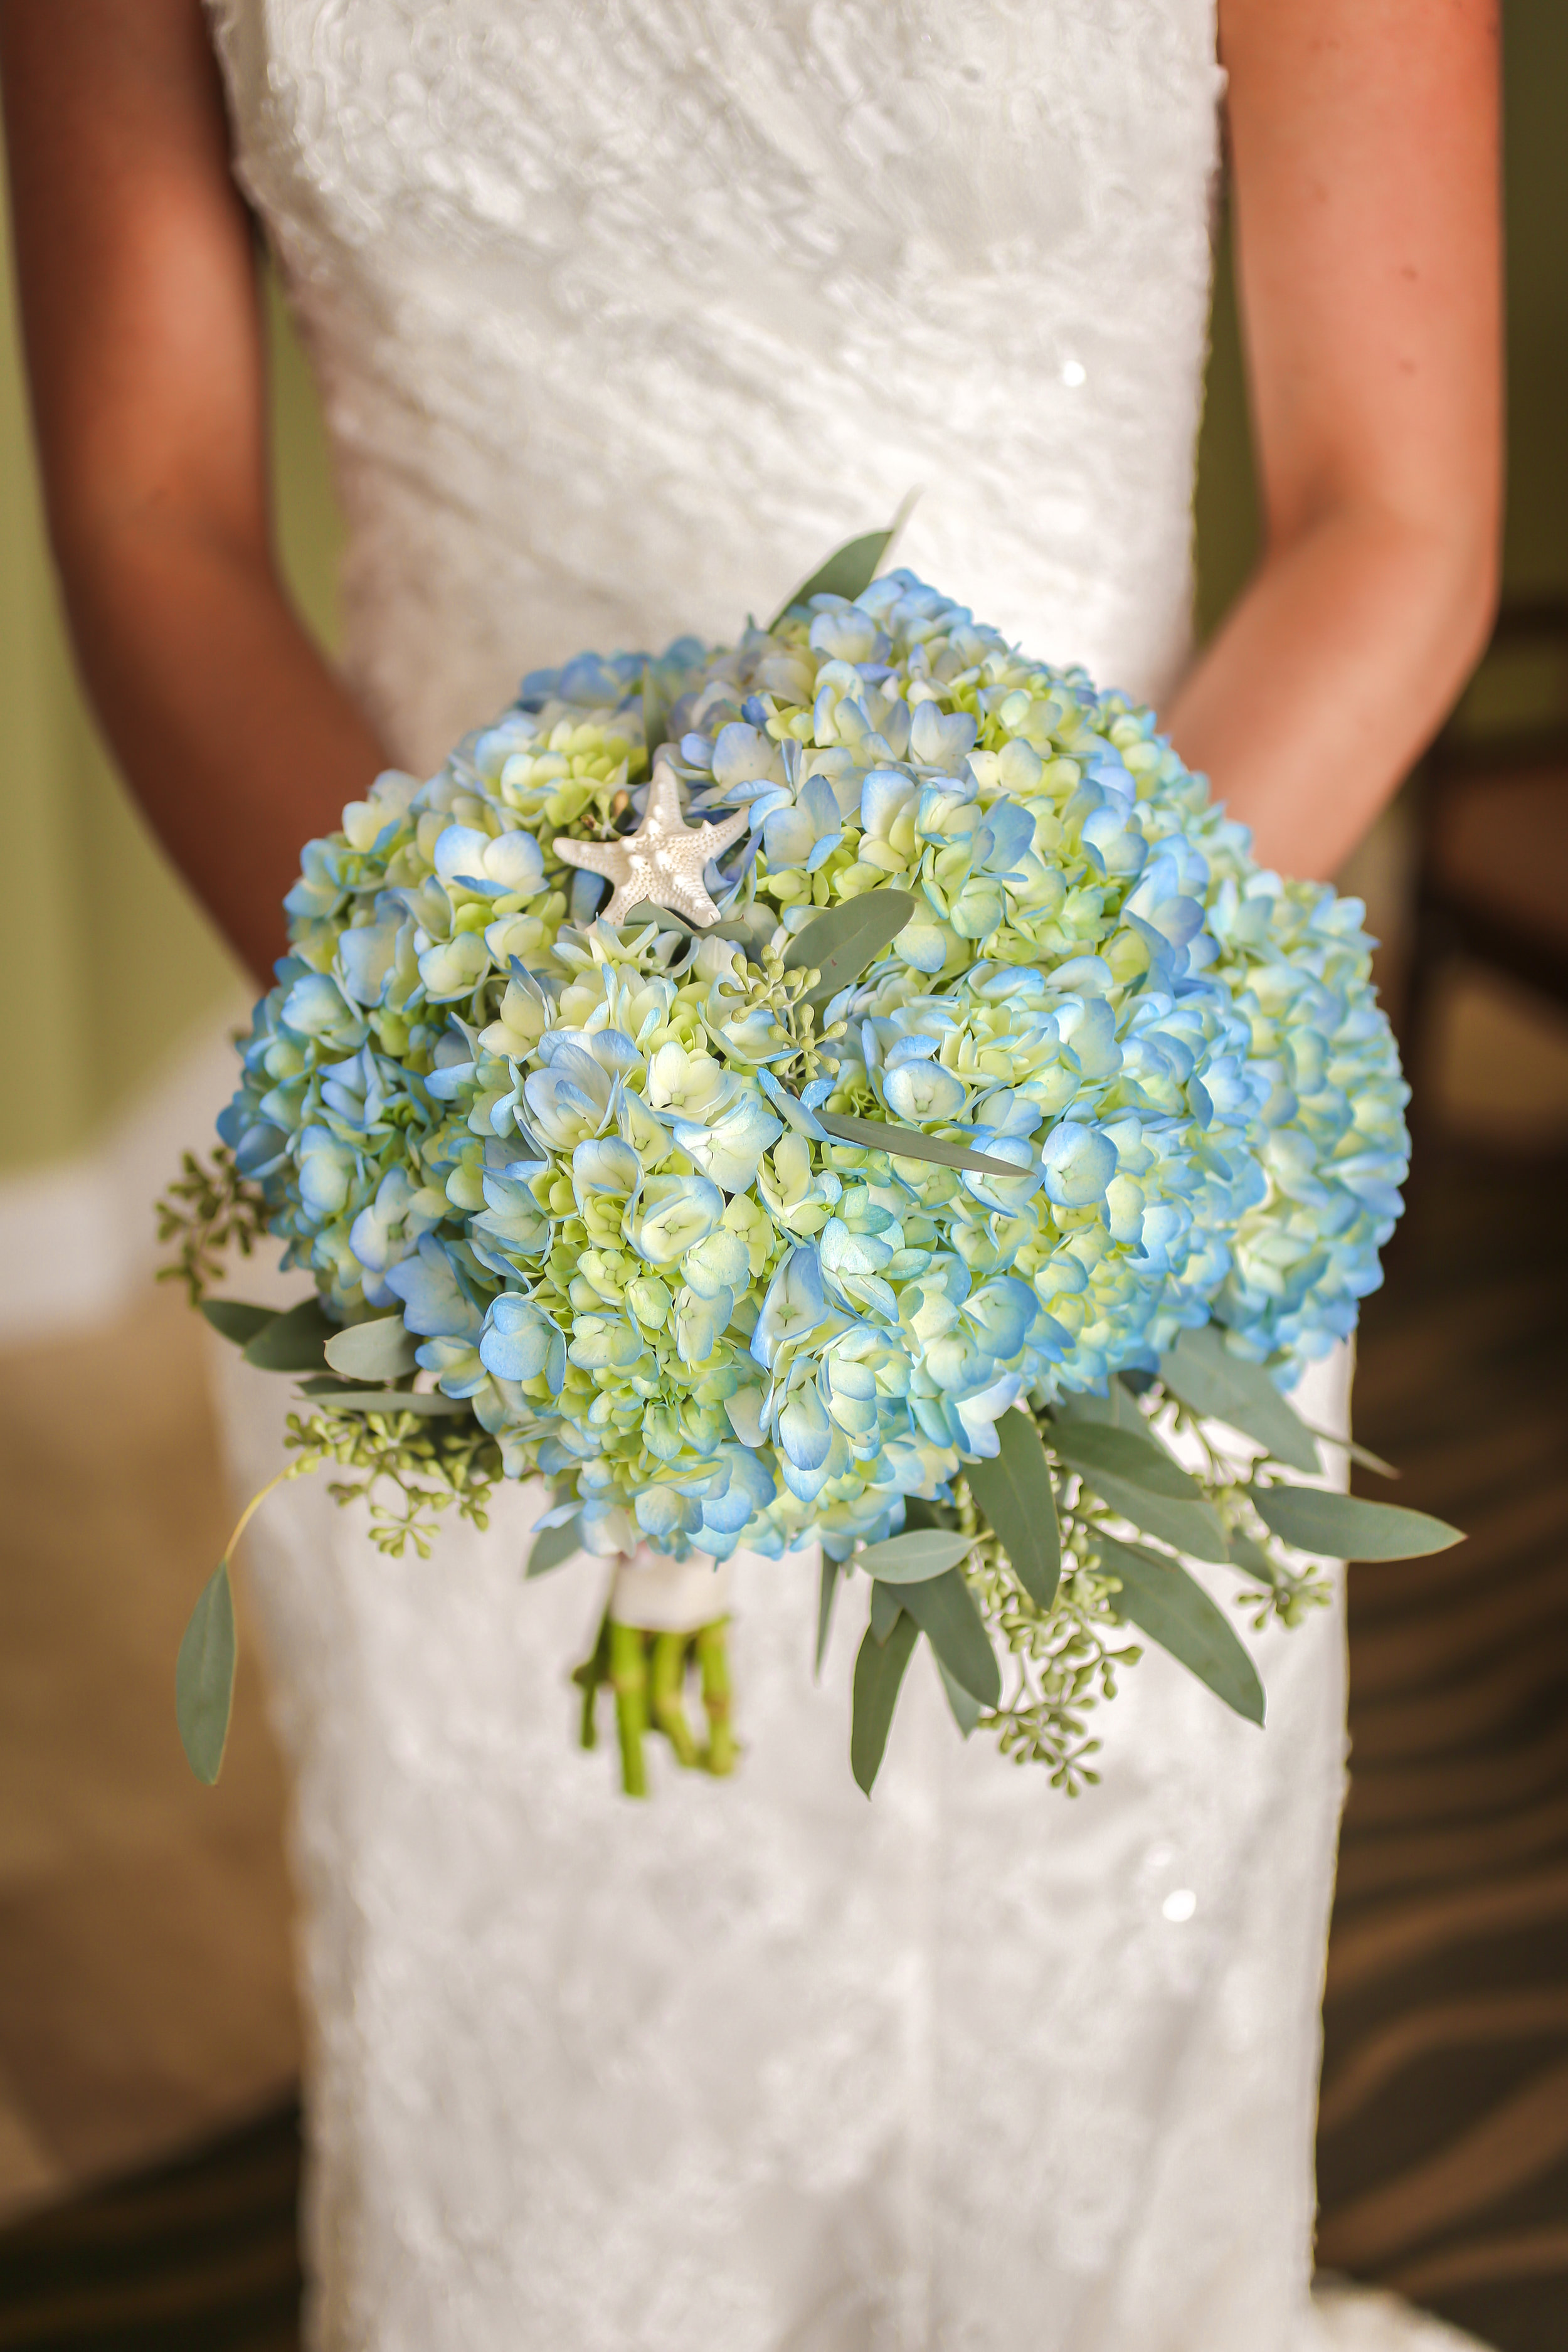 The bride carried a bouquet of blue, green, and white hydrangea accented with greenery and starfish elements.